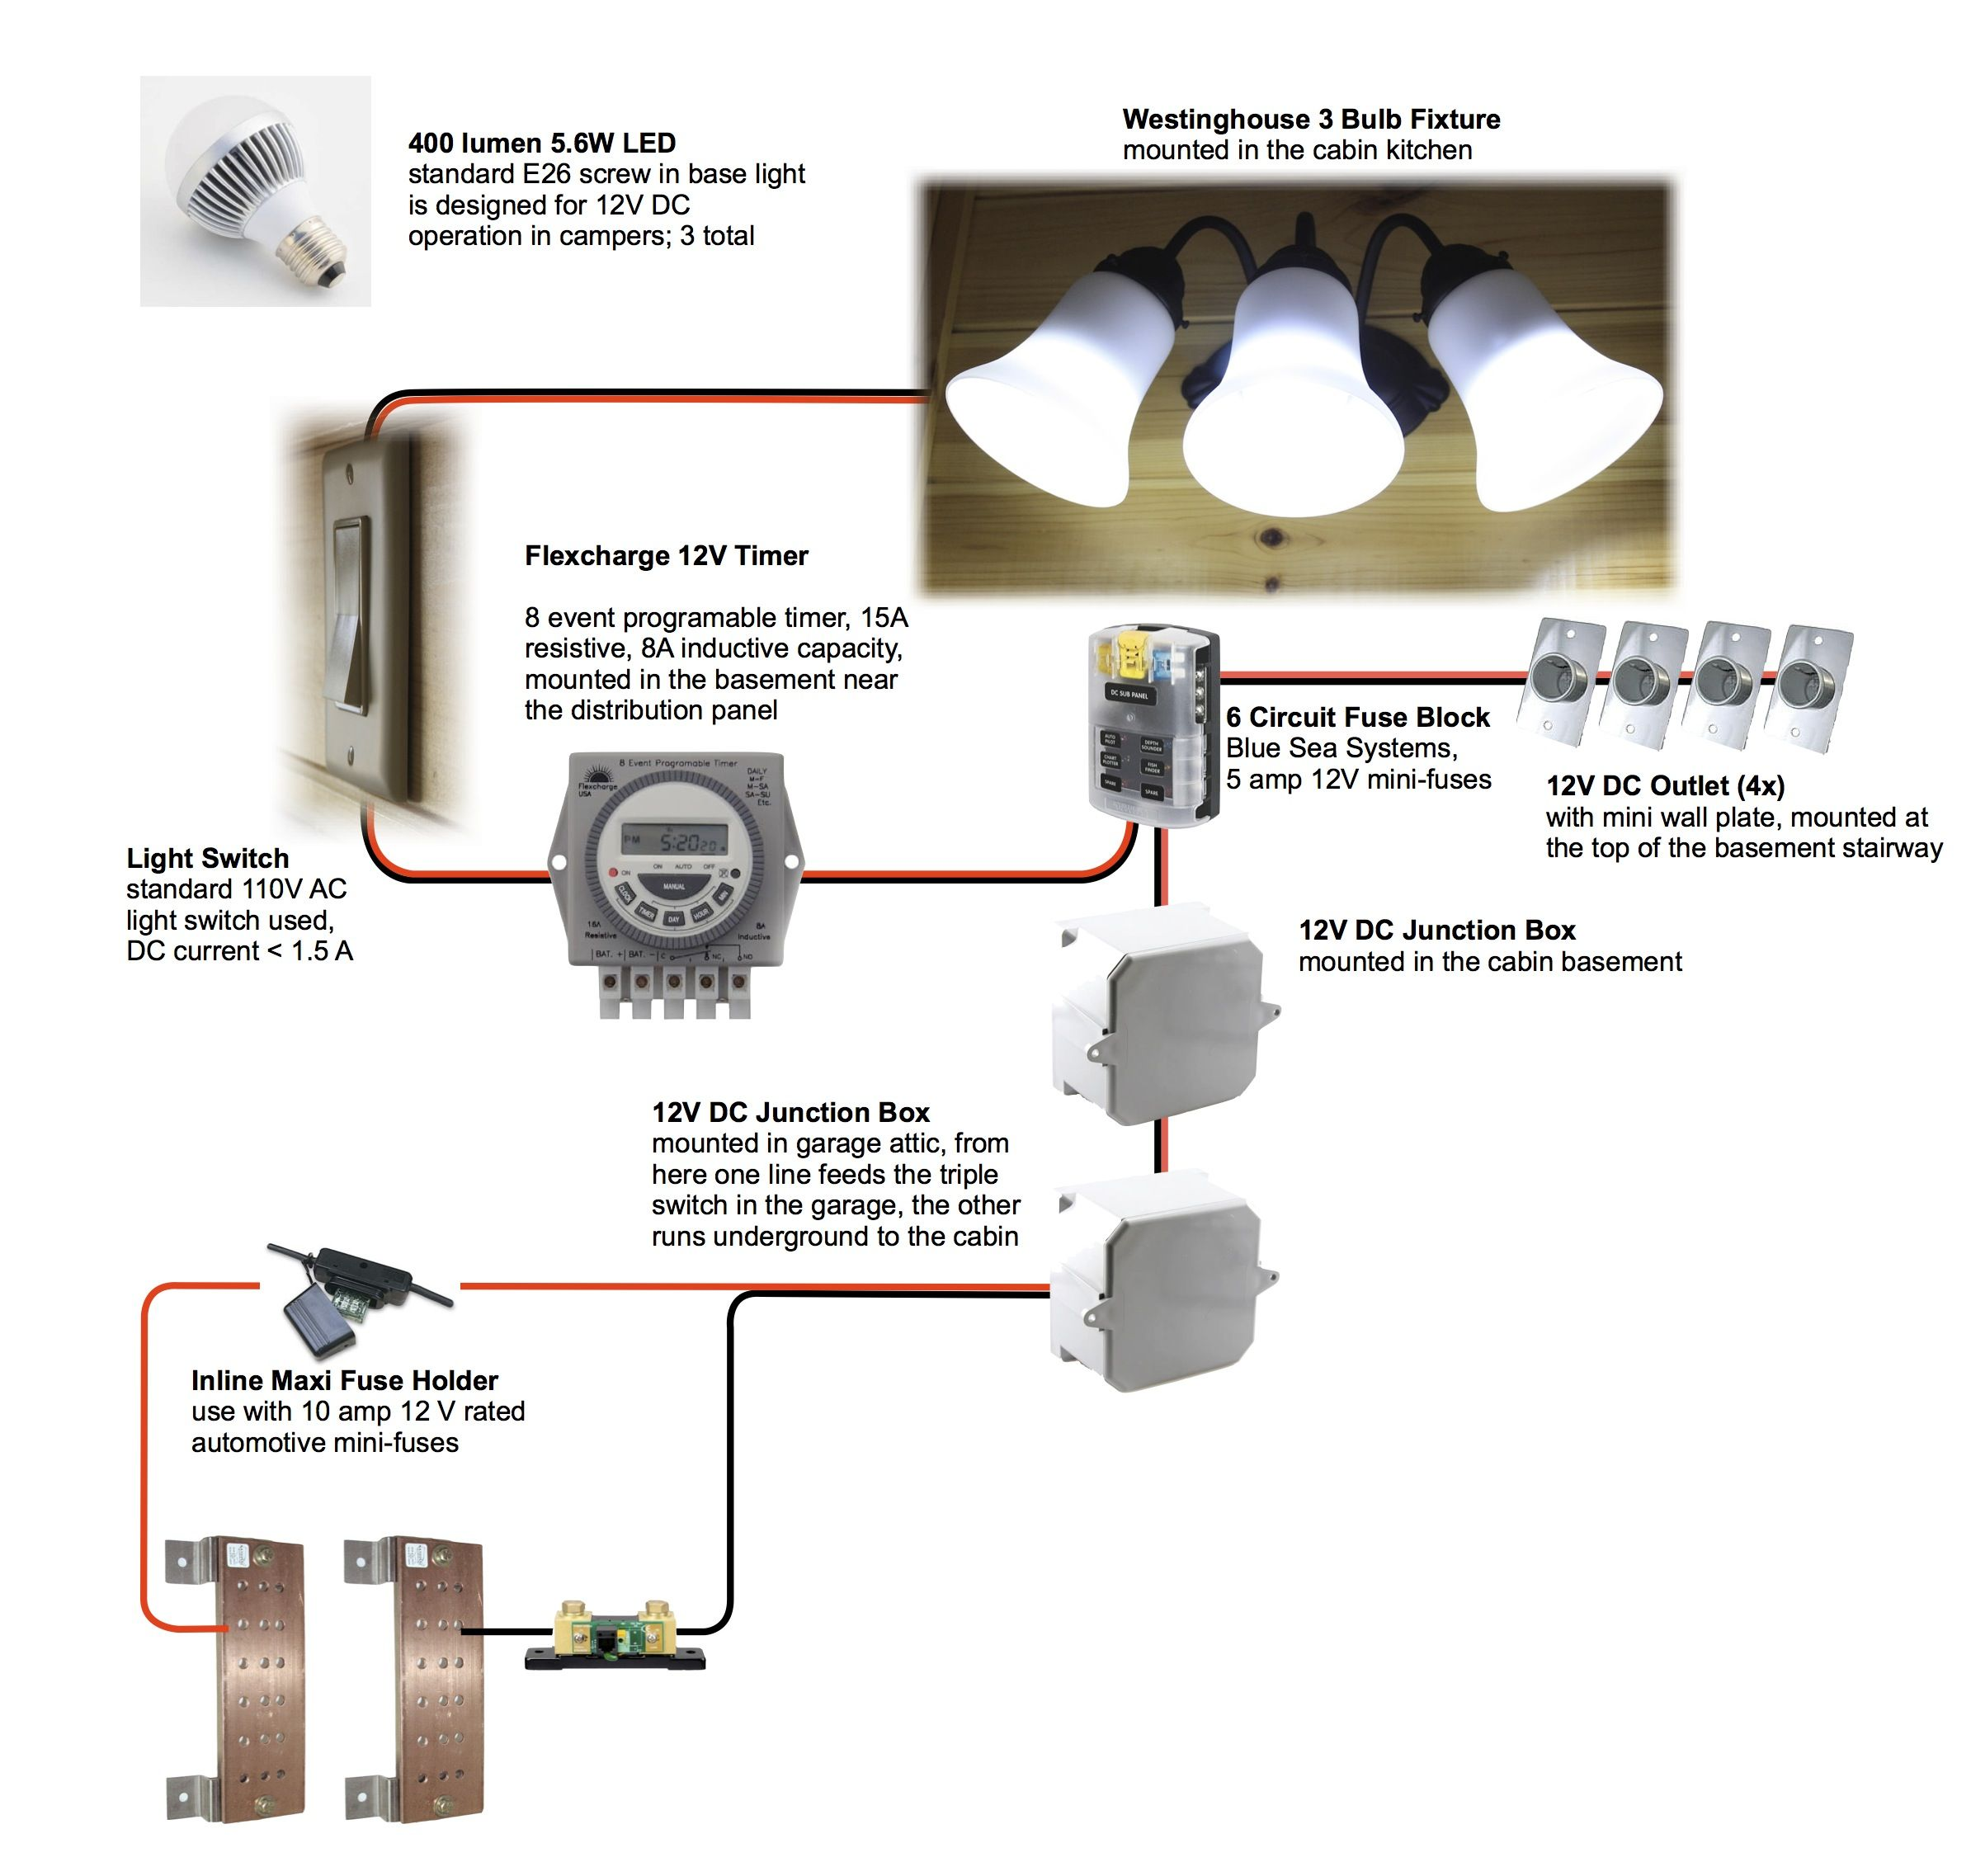 Dc Wiring For Home Led Lighting - Wiring Diagram Content